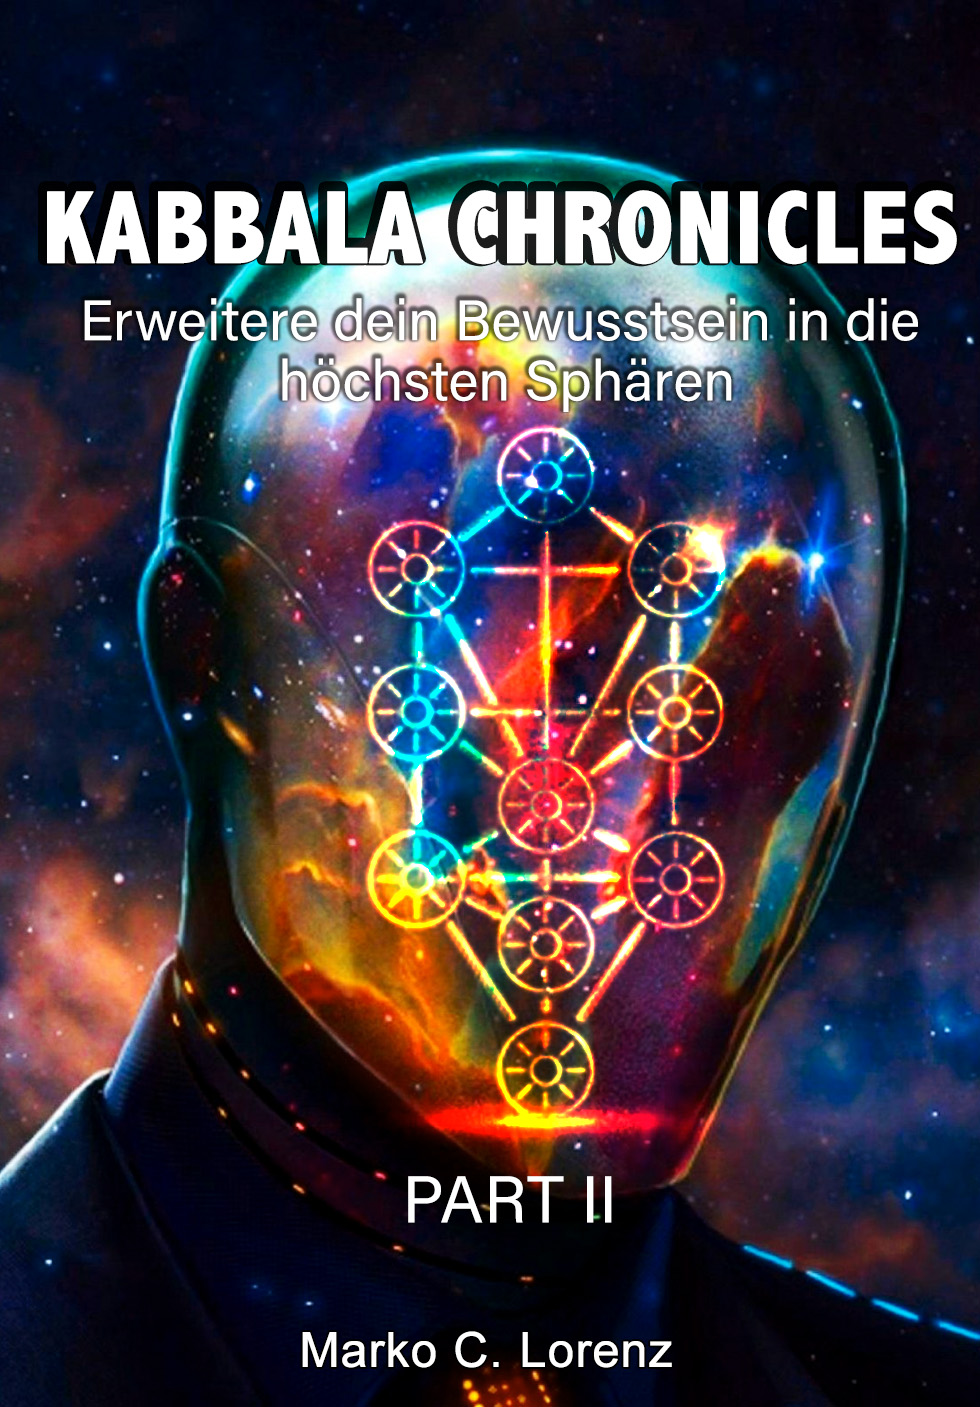 Kabbala Chronicles